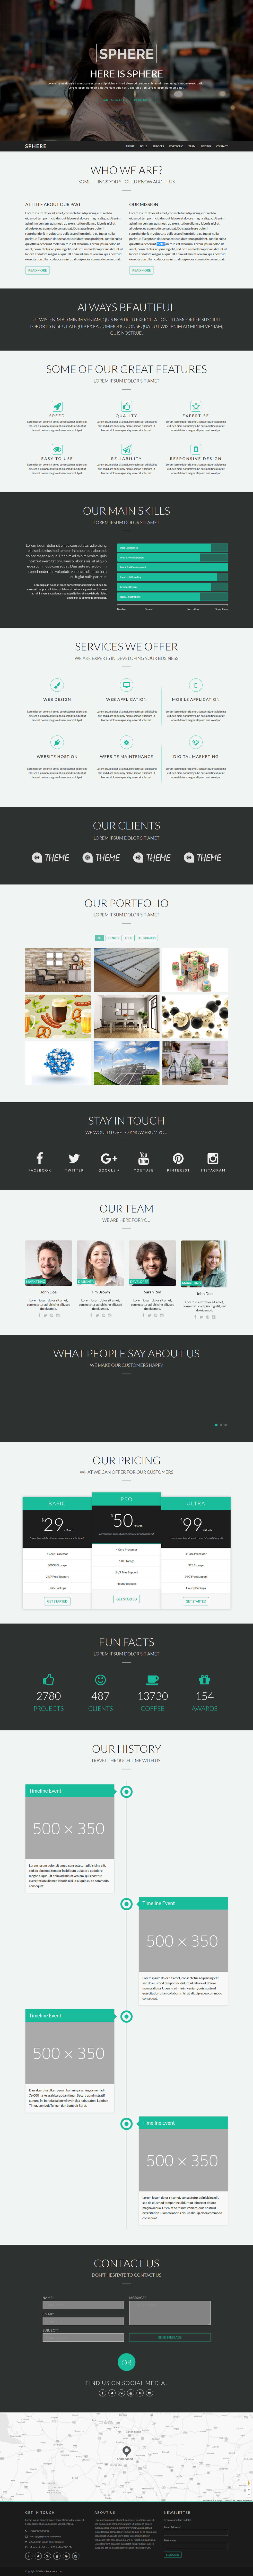 Spheretheme - Multi-Purpose One Page HTML Template by spheretheme ...